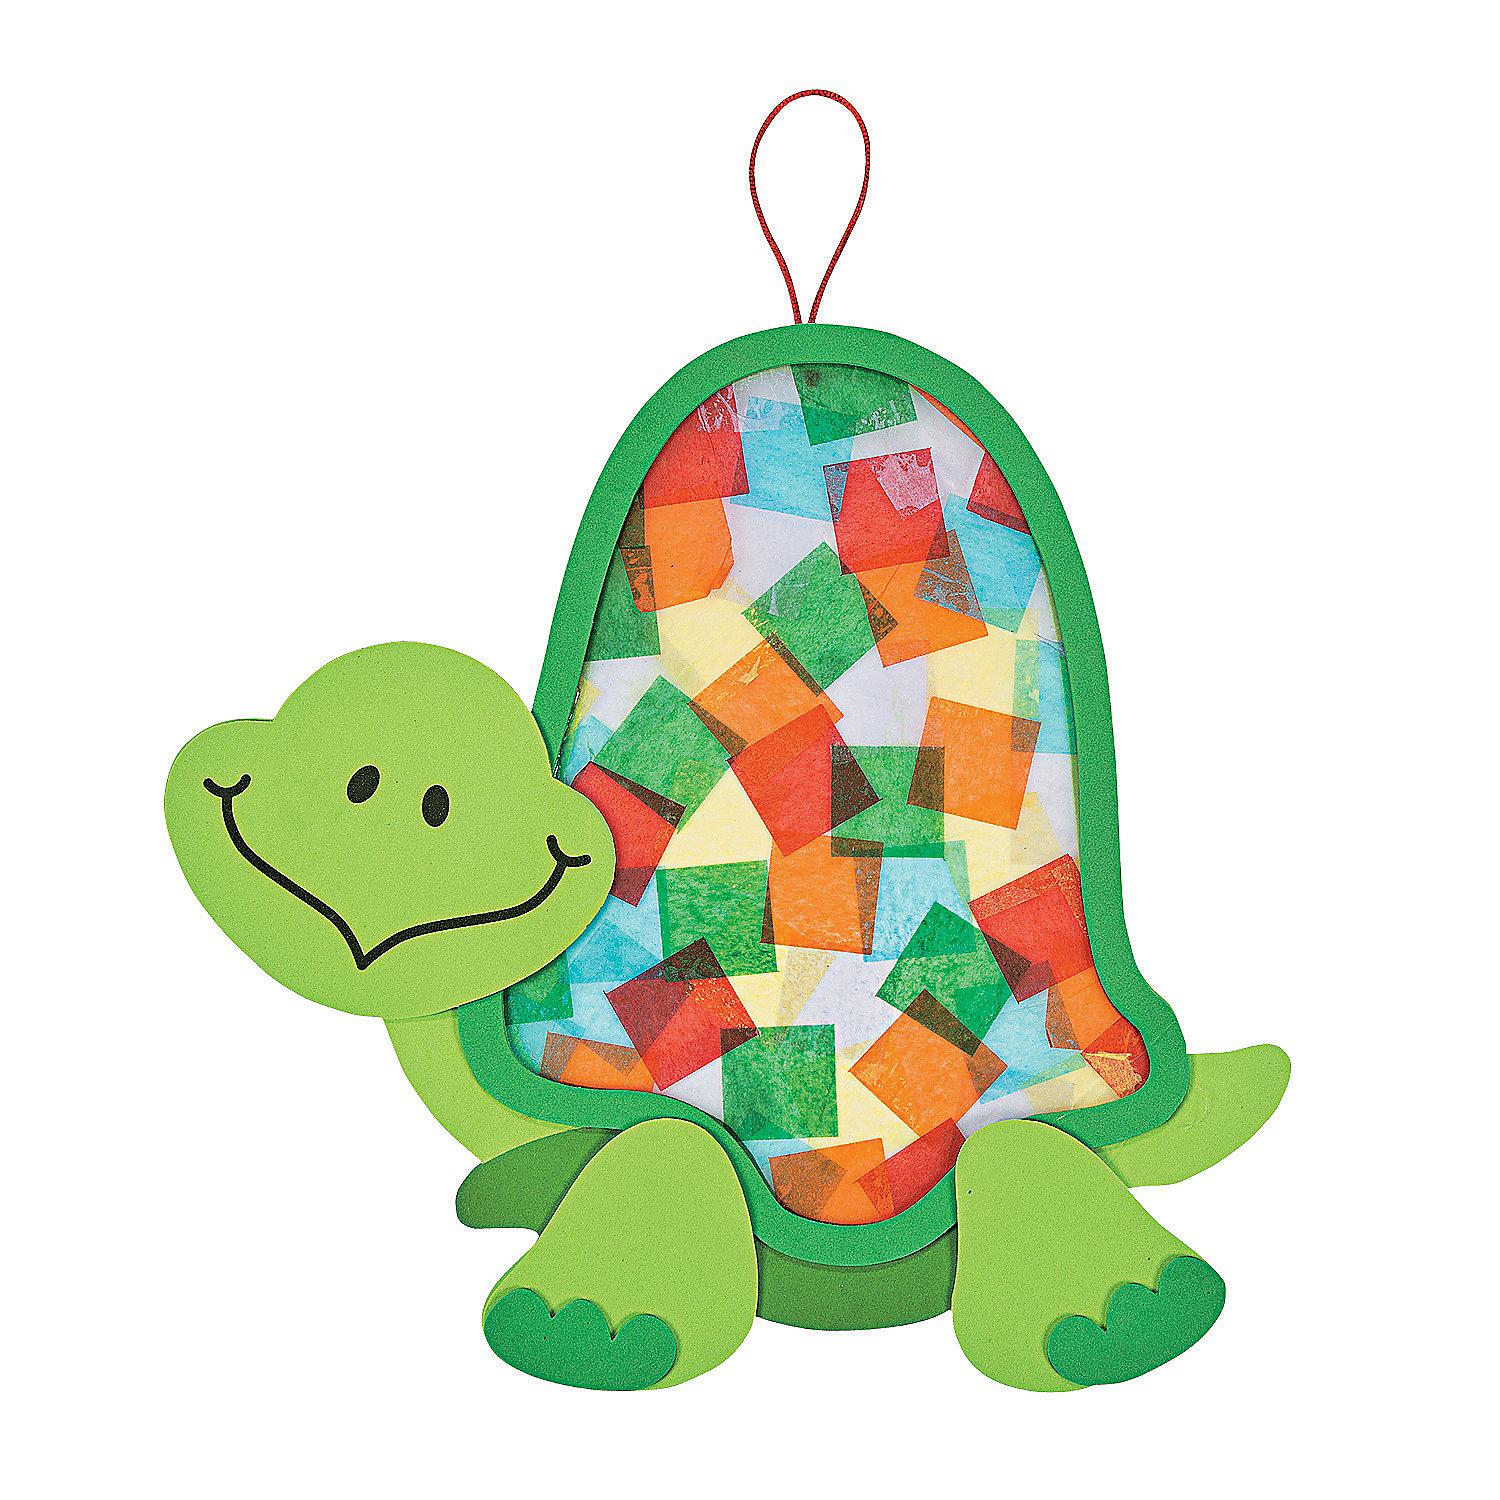 Colorful Turtle Tissue Paper Craft Kit, Decoration Crafts ...